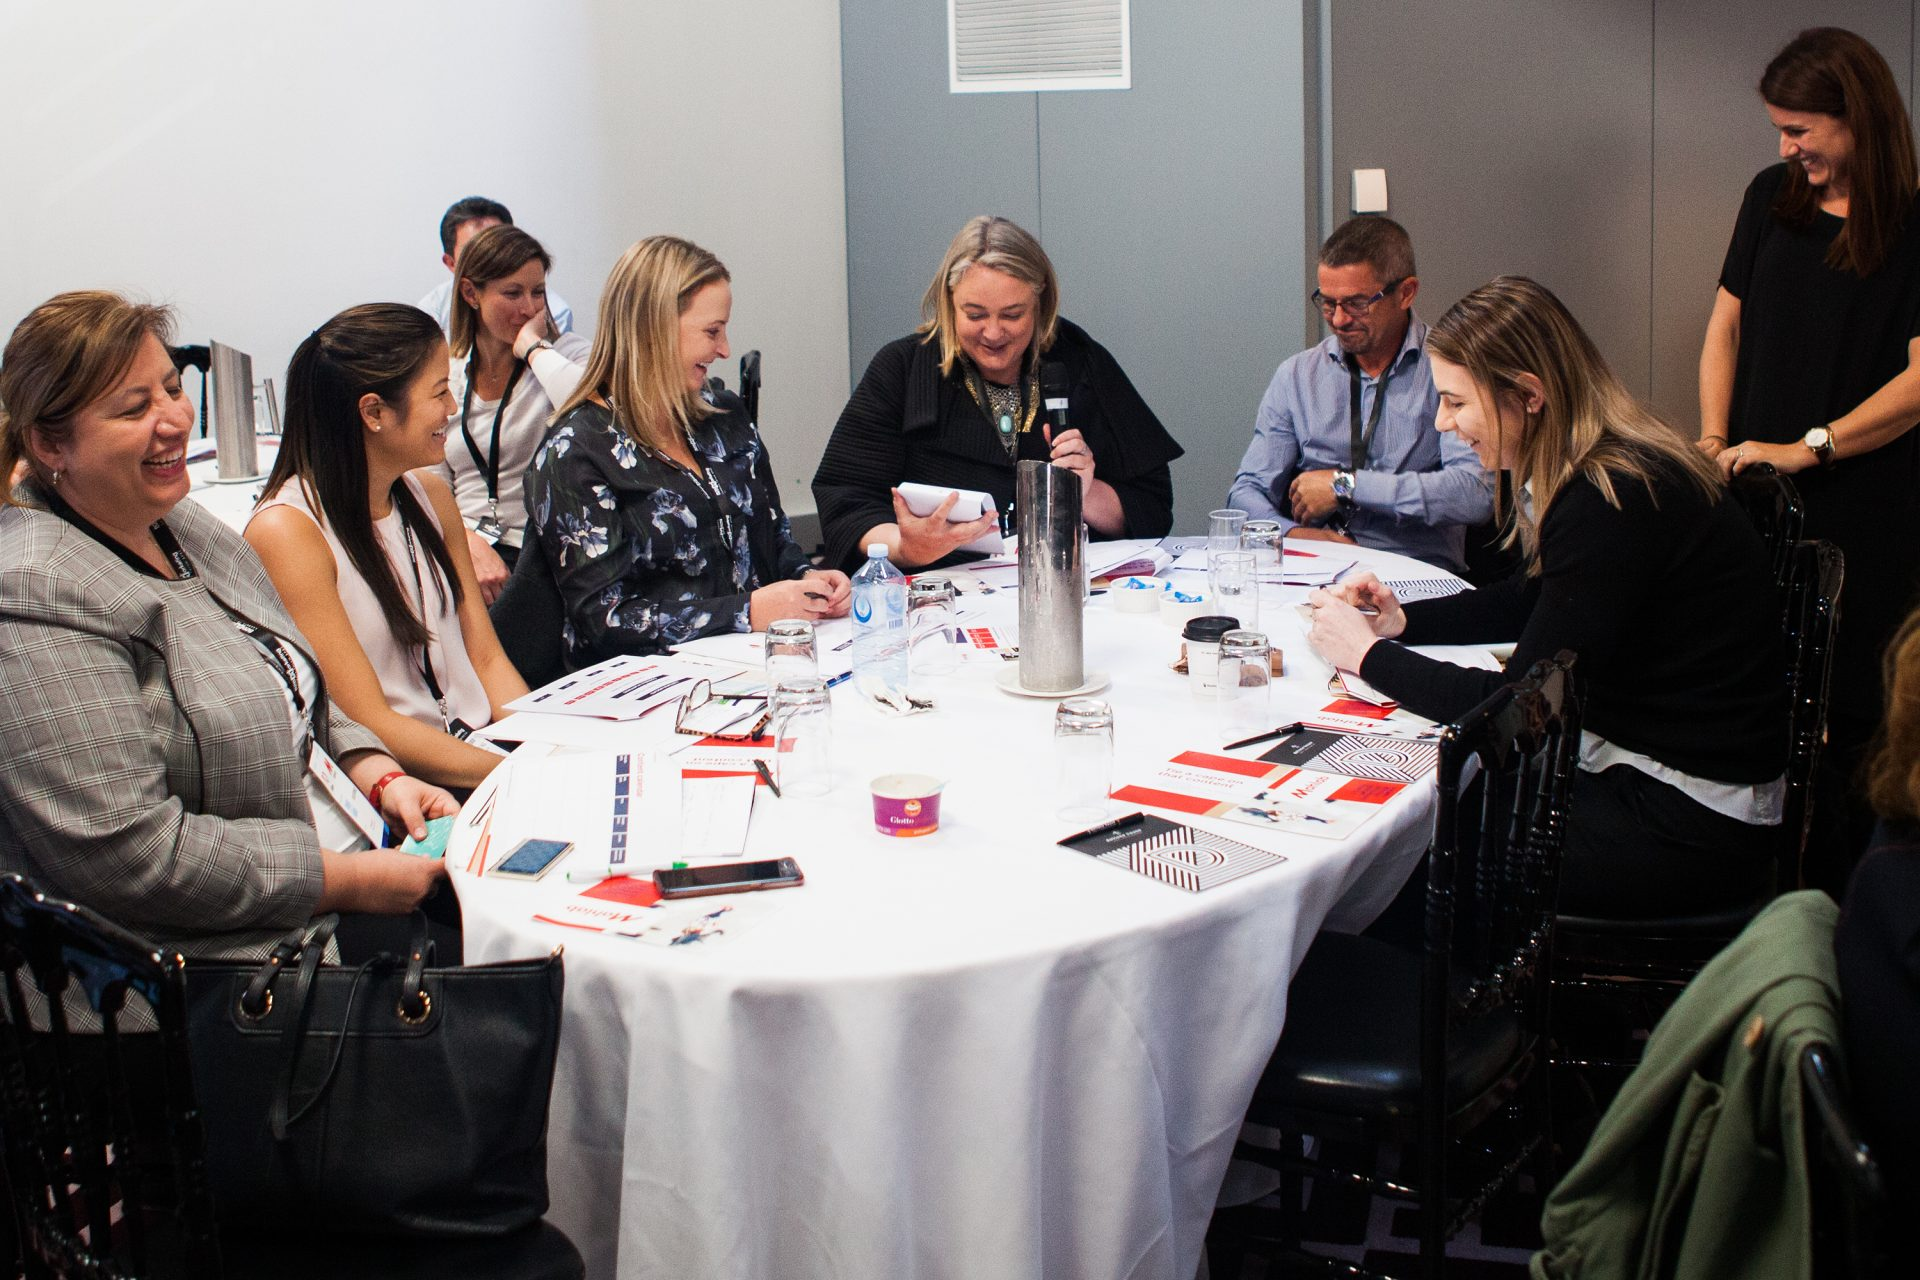 B2B-Marketing-Conference-Sydney-Australia-Sydney 2020